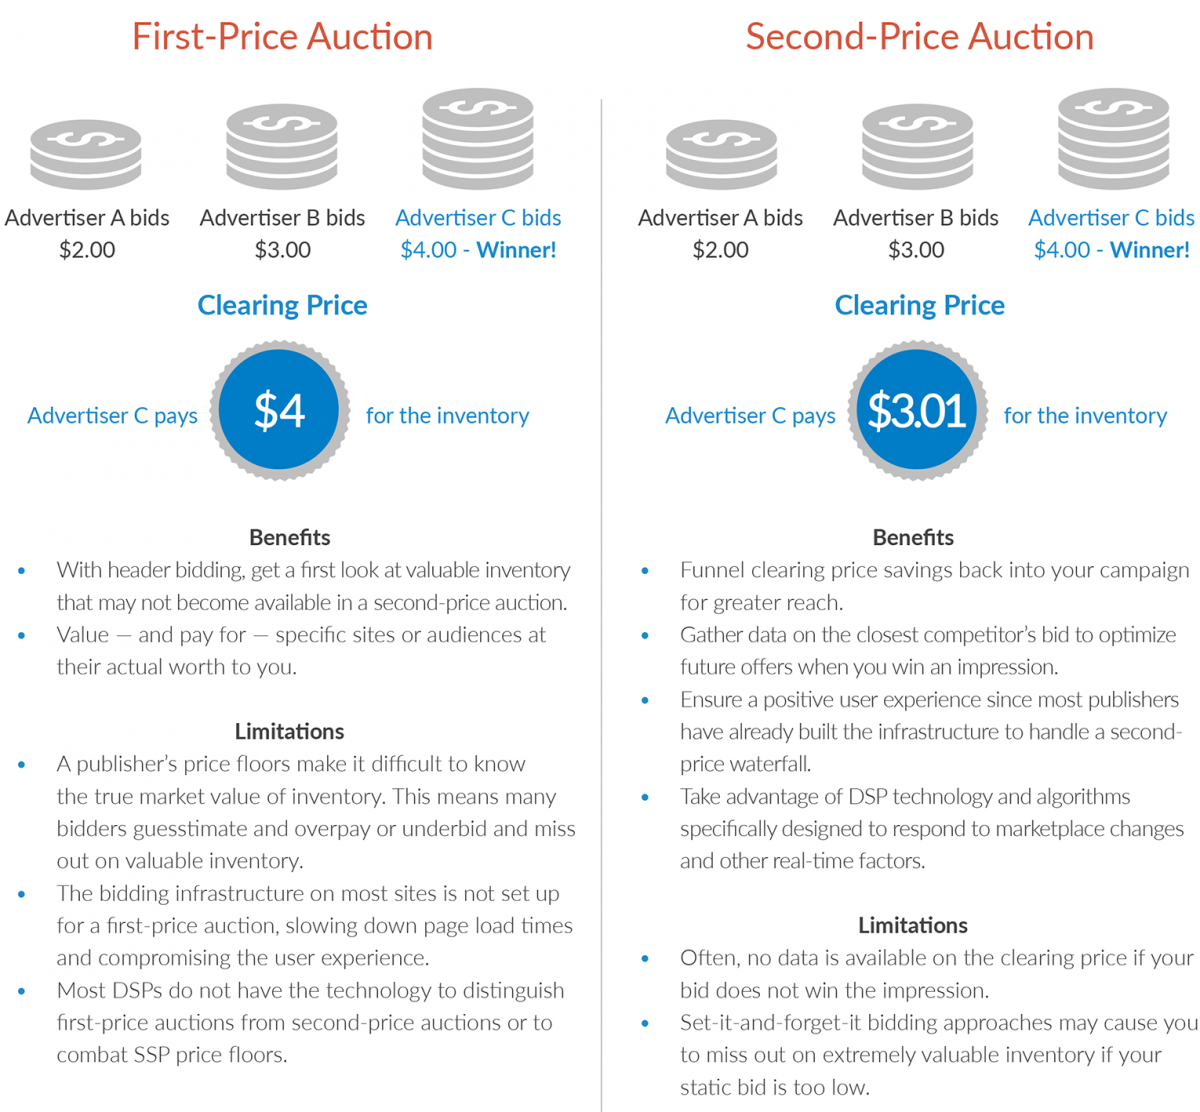 auction_types_chart-1200x1112.png